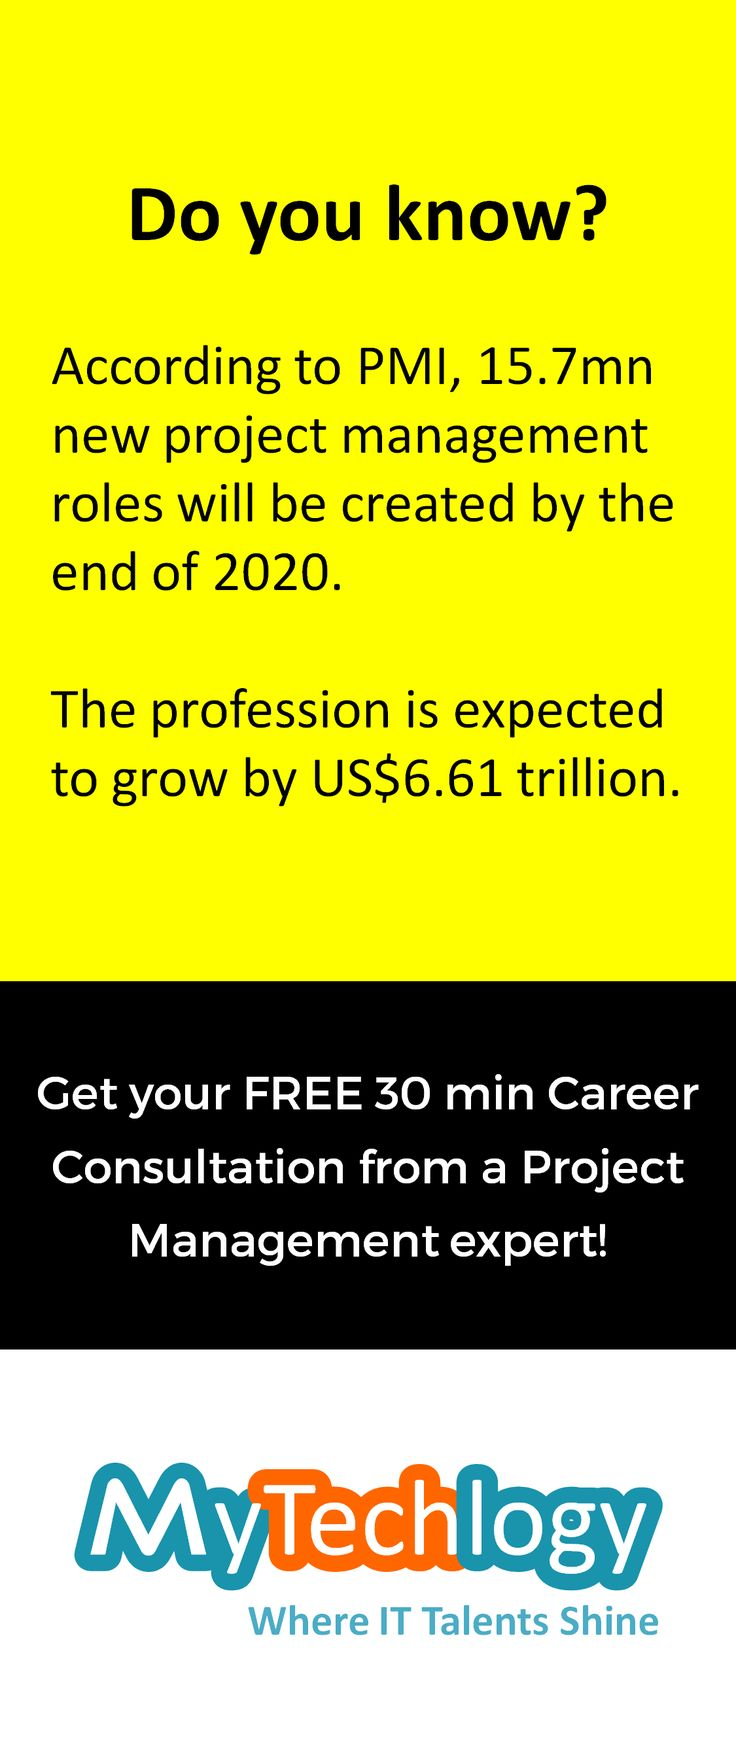 Discuss your readiness for the next level in project management with an expert. Get your free 30-min consultation (no credit-card required). To book your appointment  visit: http://www.mytechlogy.com/IT-career-development-services/career-coaches/Claudine-Kumar/ Hurry up! Only limited slots available!